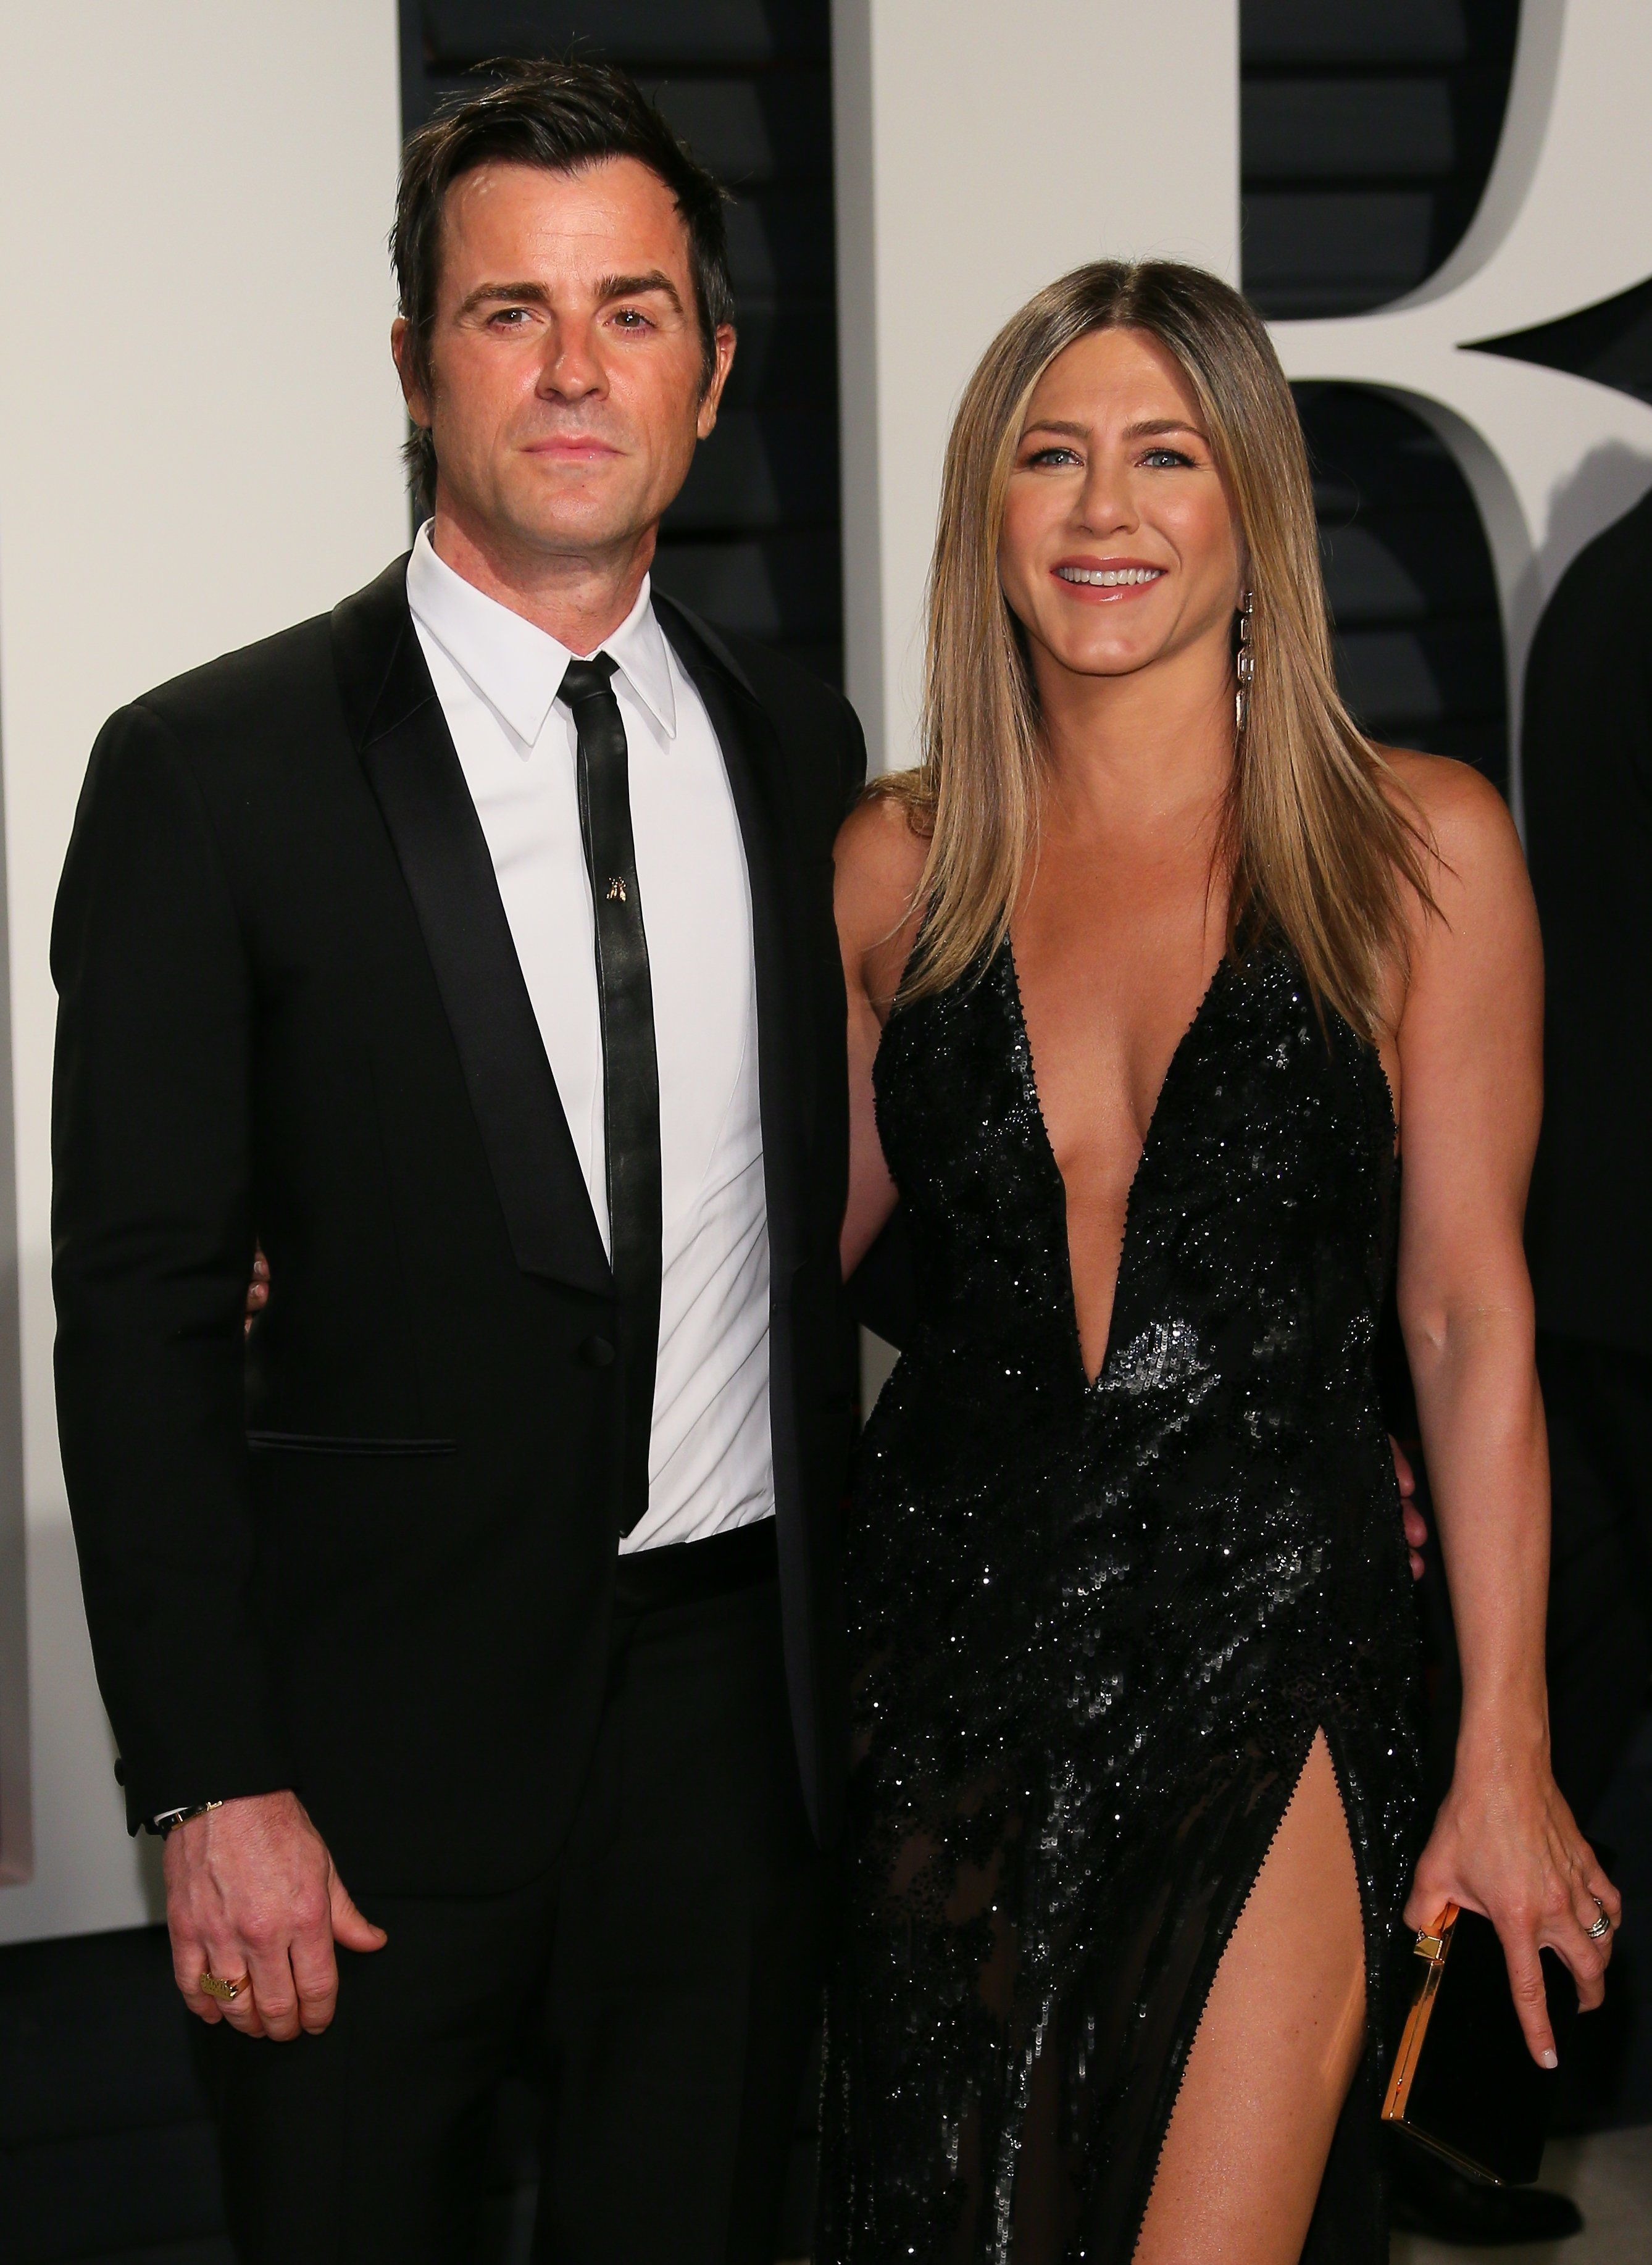 Justin Theroux and Jennifer Aniston at the Vanity Fair Oscars party in 2017.